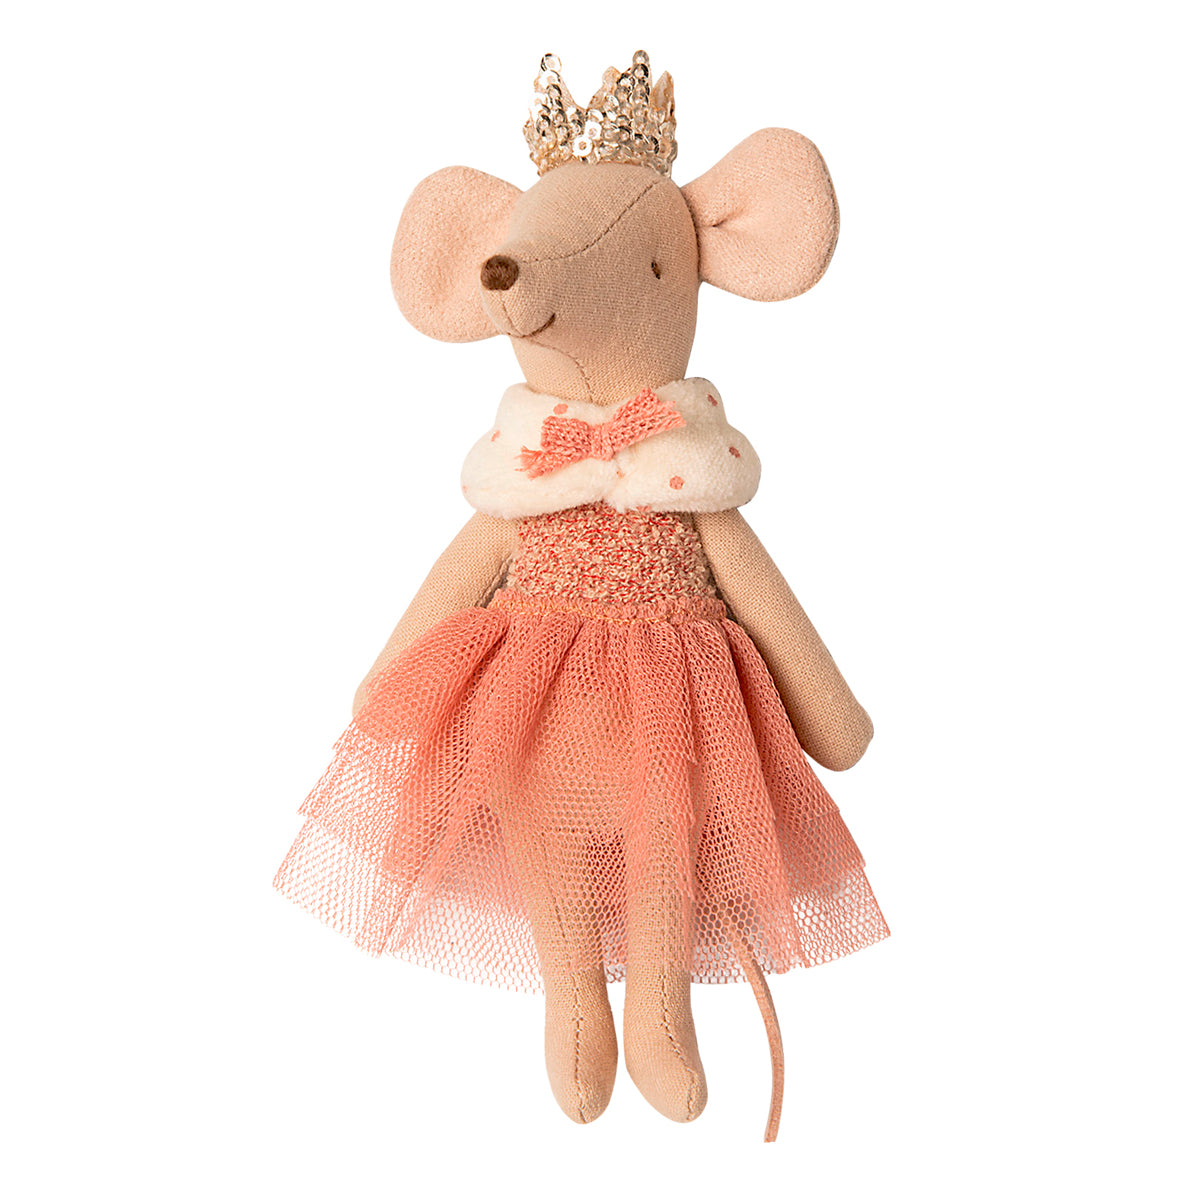 Maileg Princess mouse, Big sister Miniature dolls house